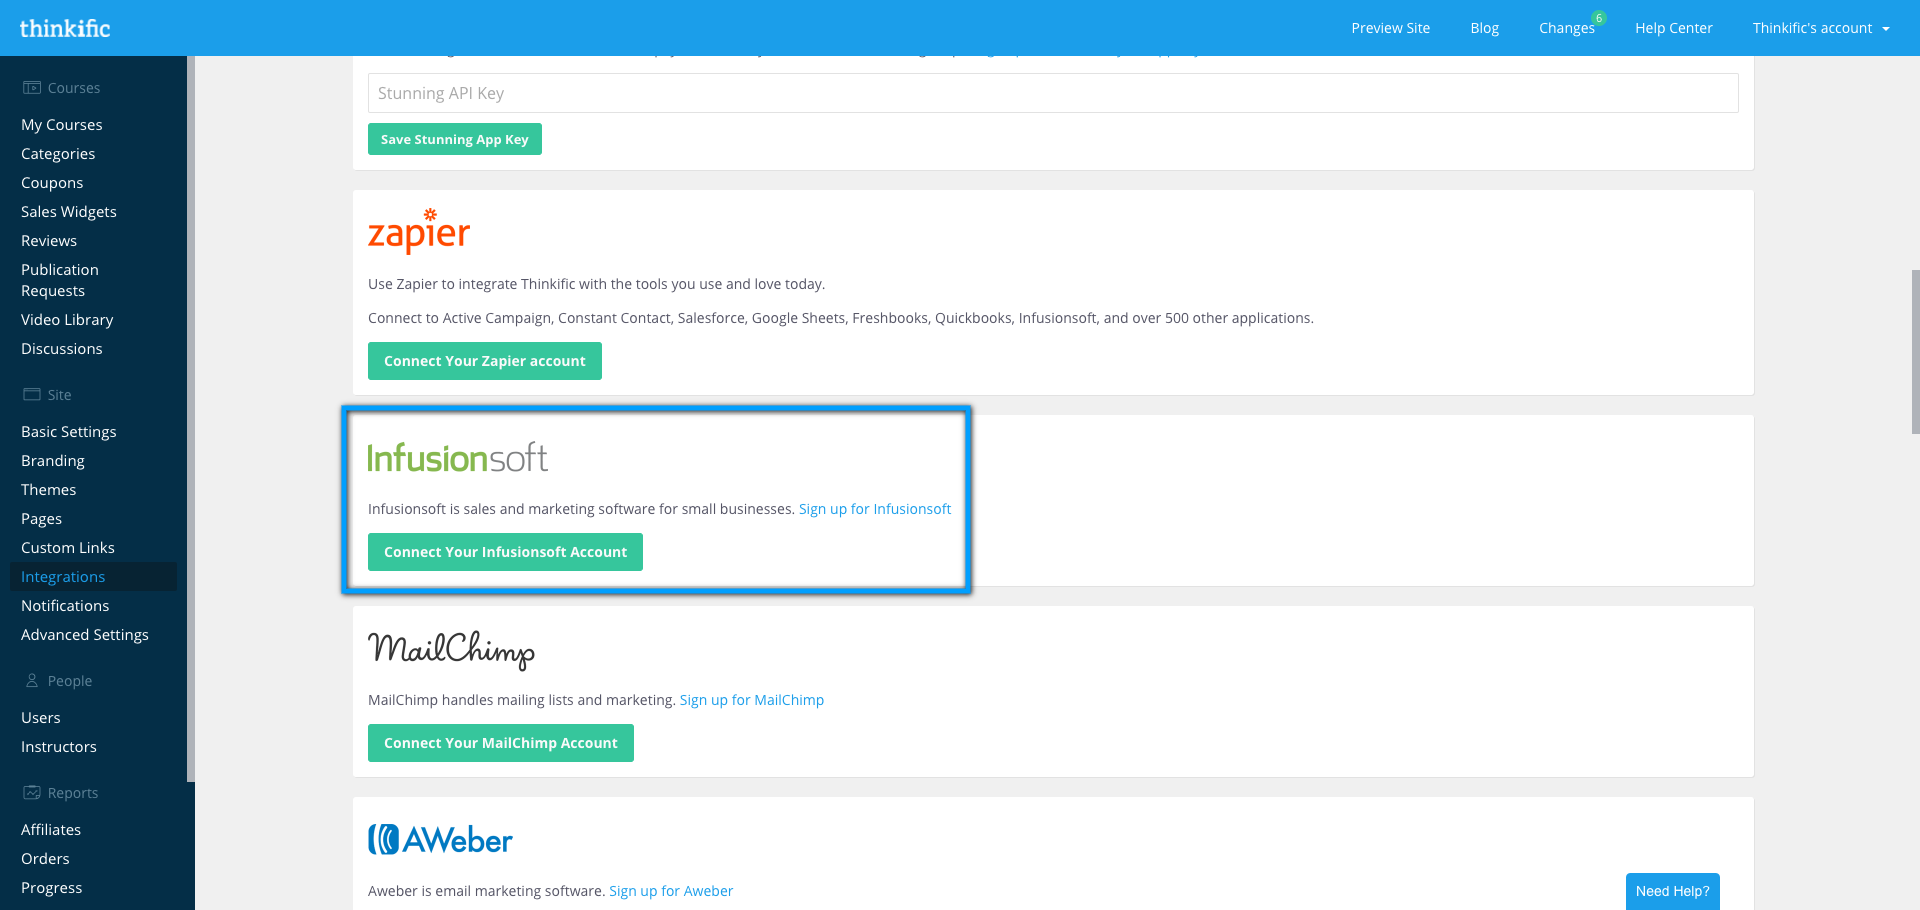 The Thinkific Integrations page